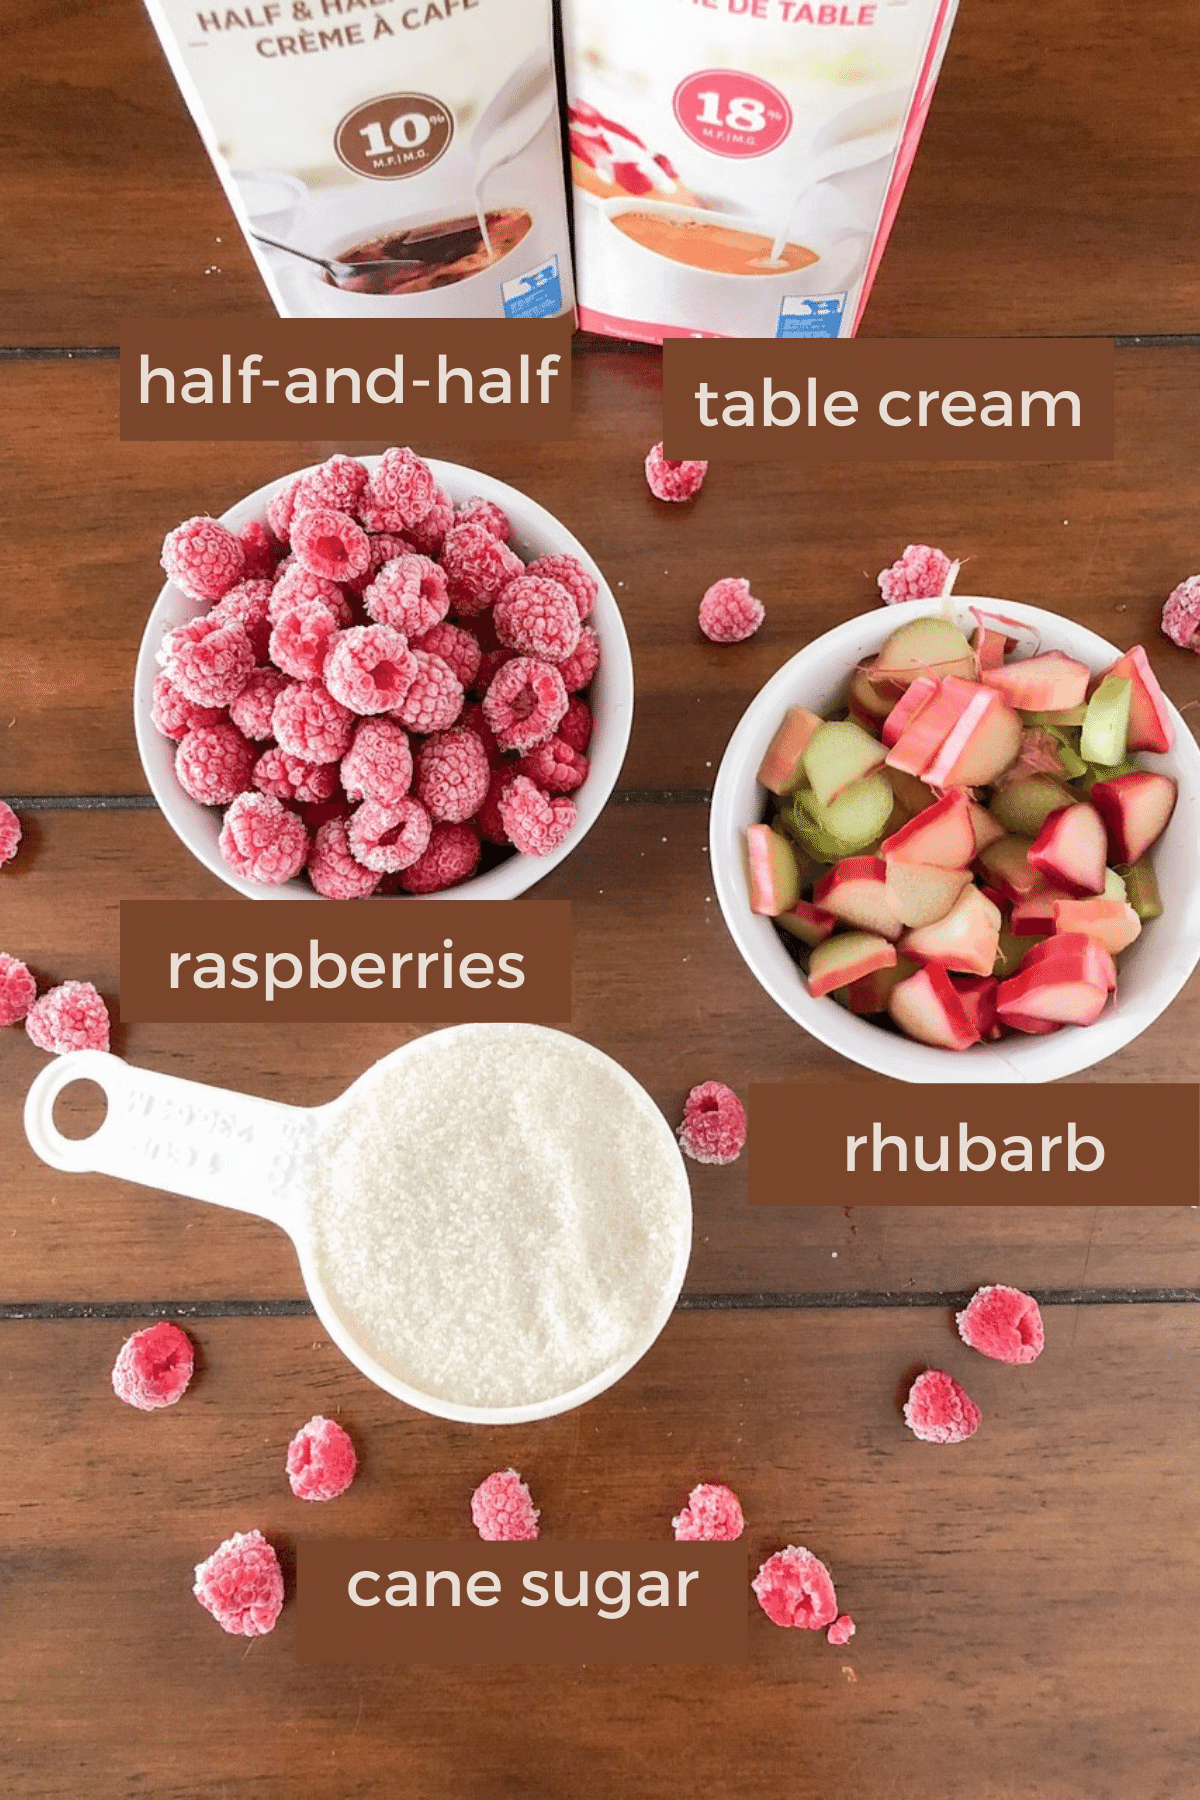 Ingredients needed to make raspberry rhubarb ice cream on a wood table